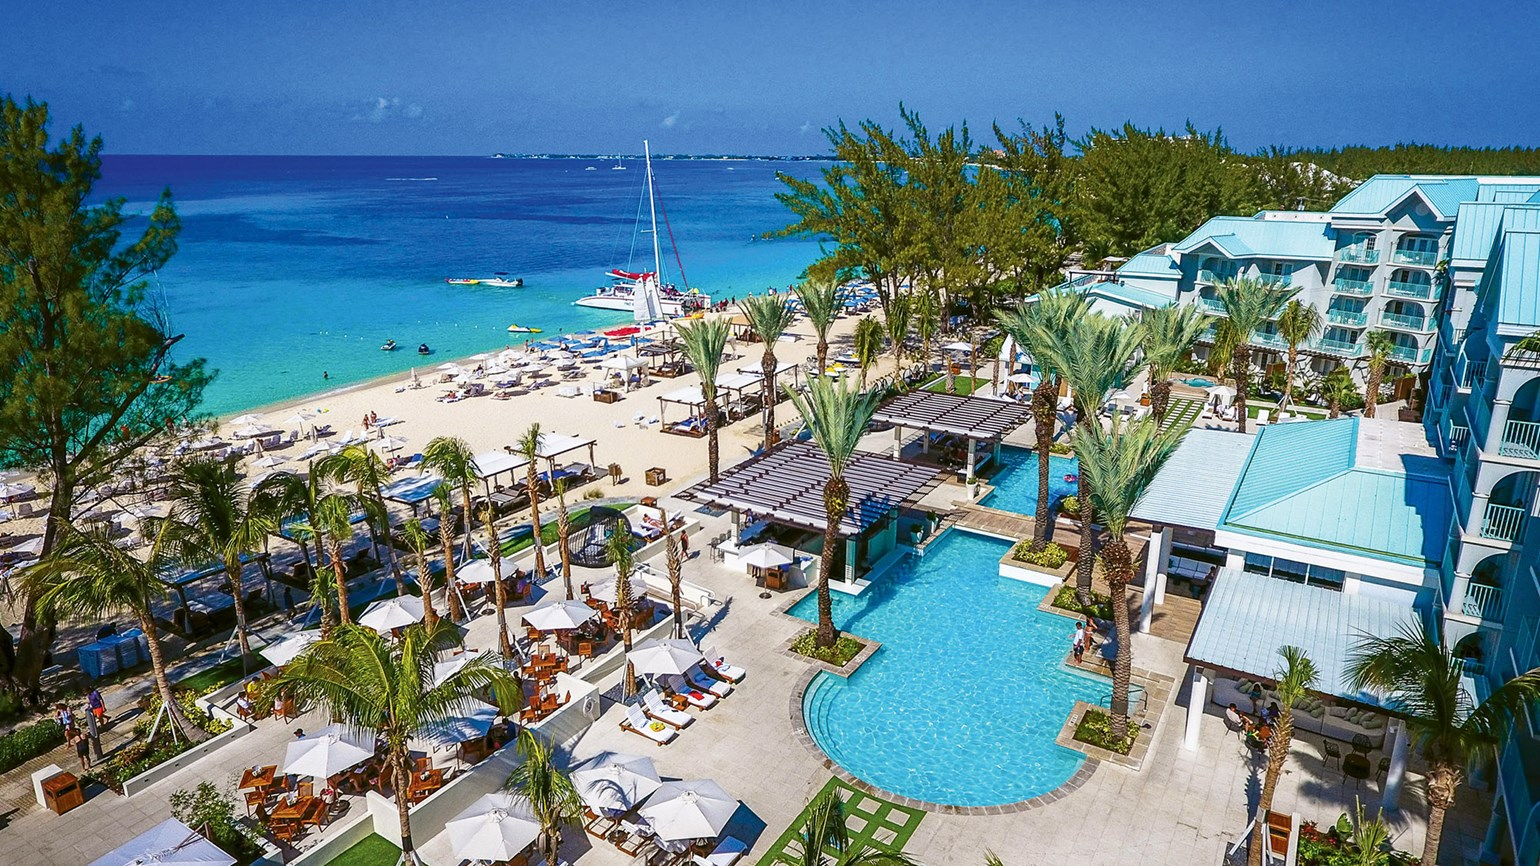 Westin Grand Cayman: Grand plans in motion